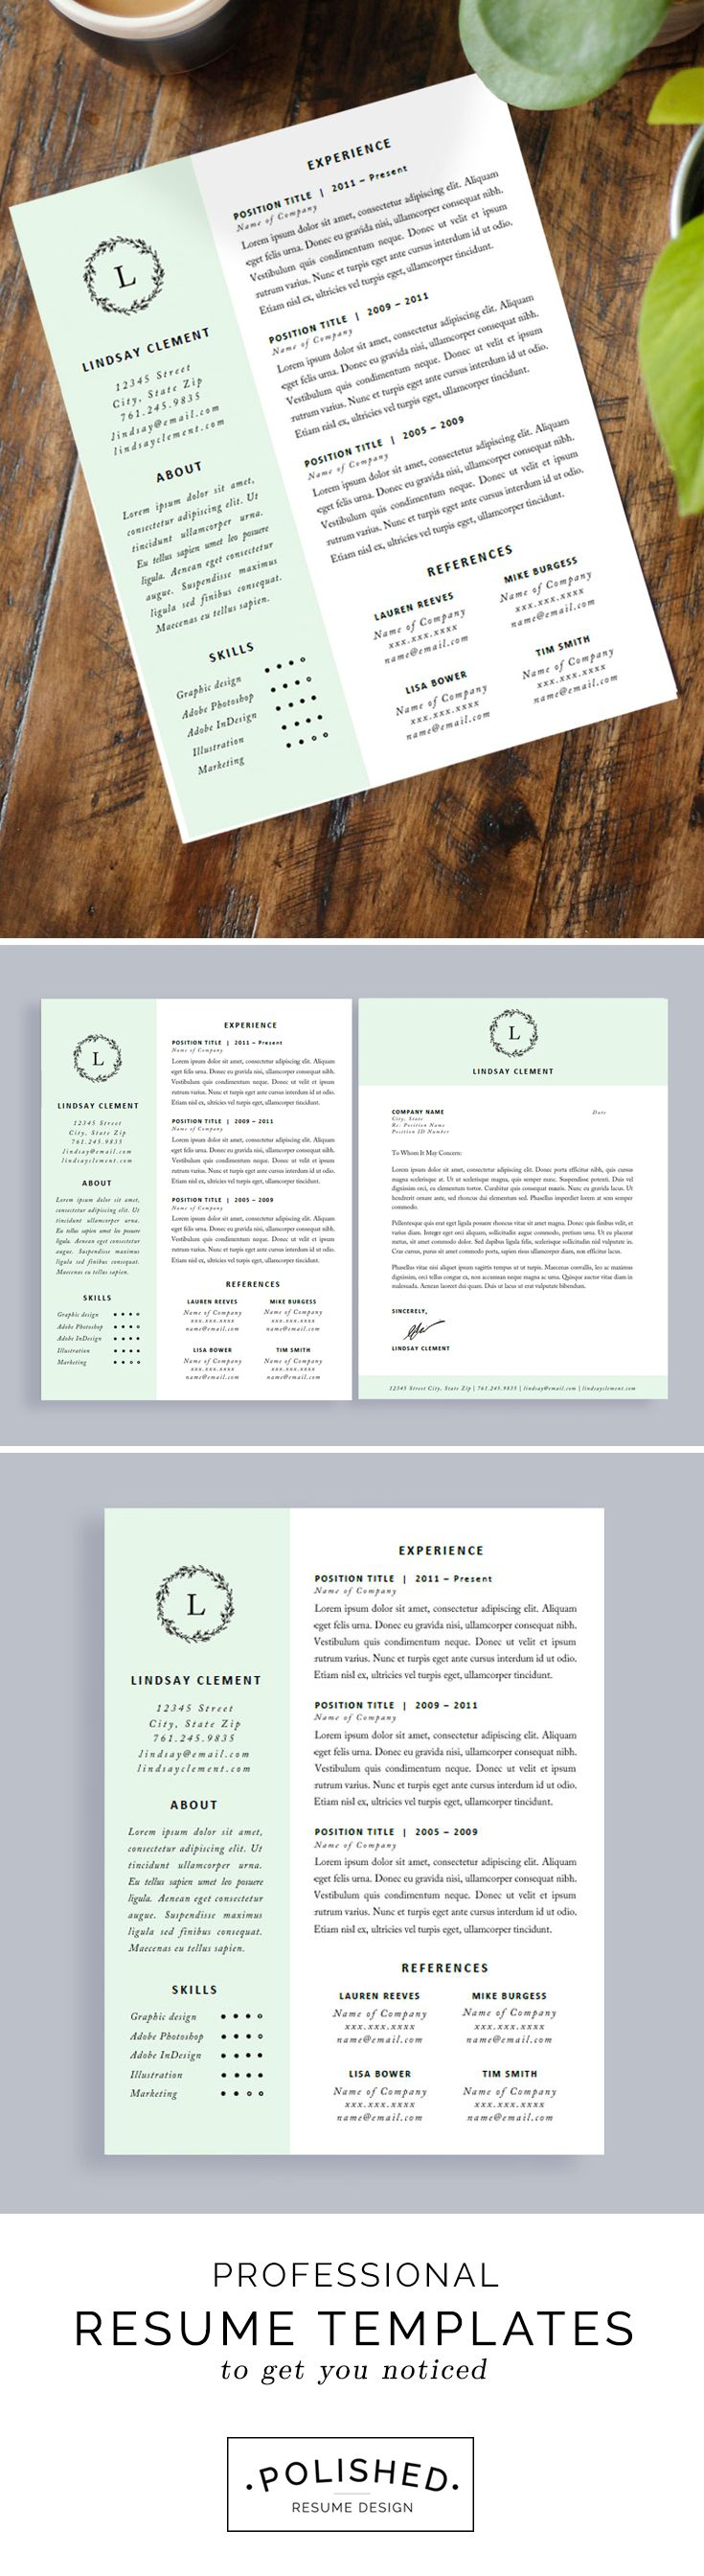 17 best ideas about cover letters cover letter tips professional resume templates for microsoft word features 1 and 2 page options plus a cover letter design